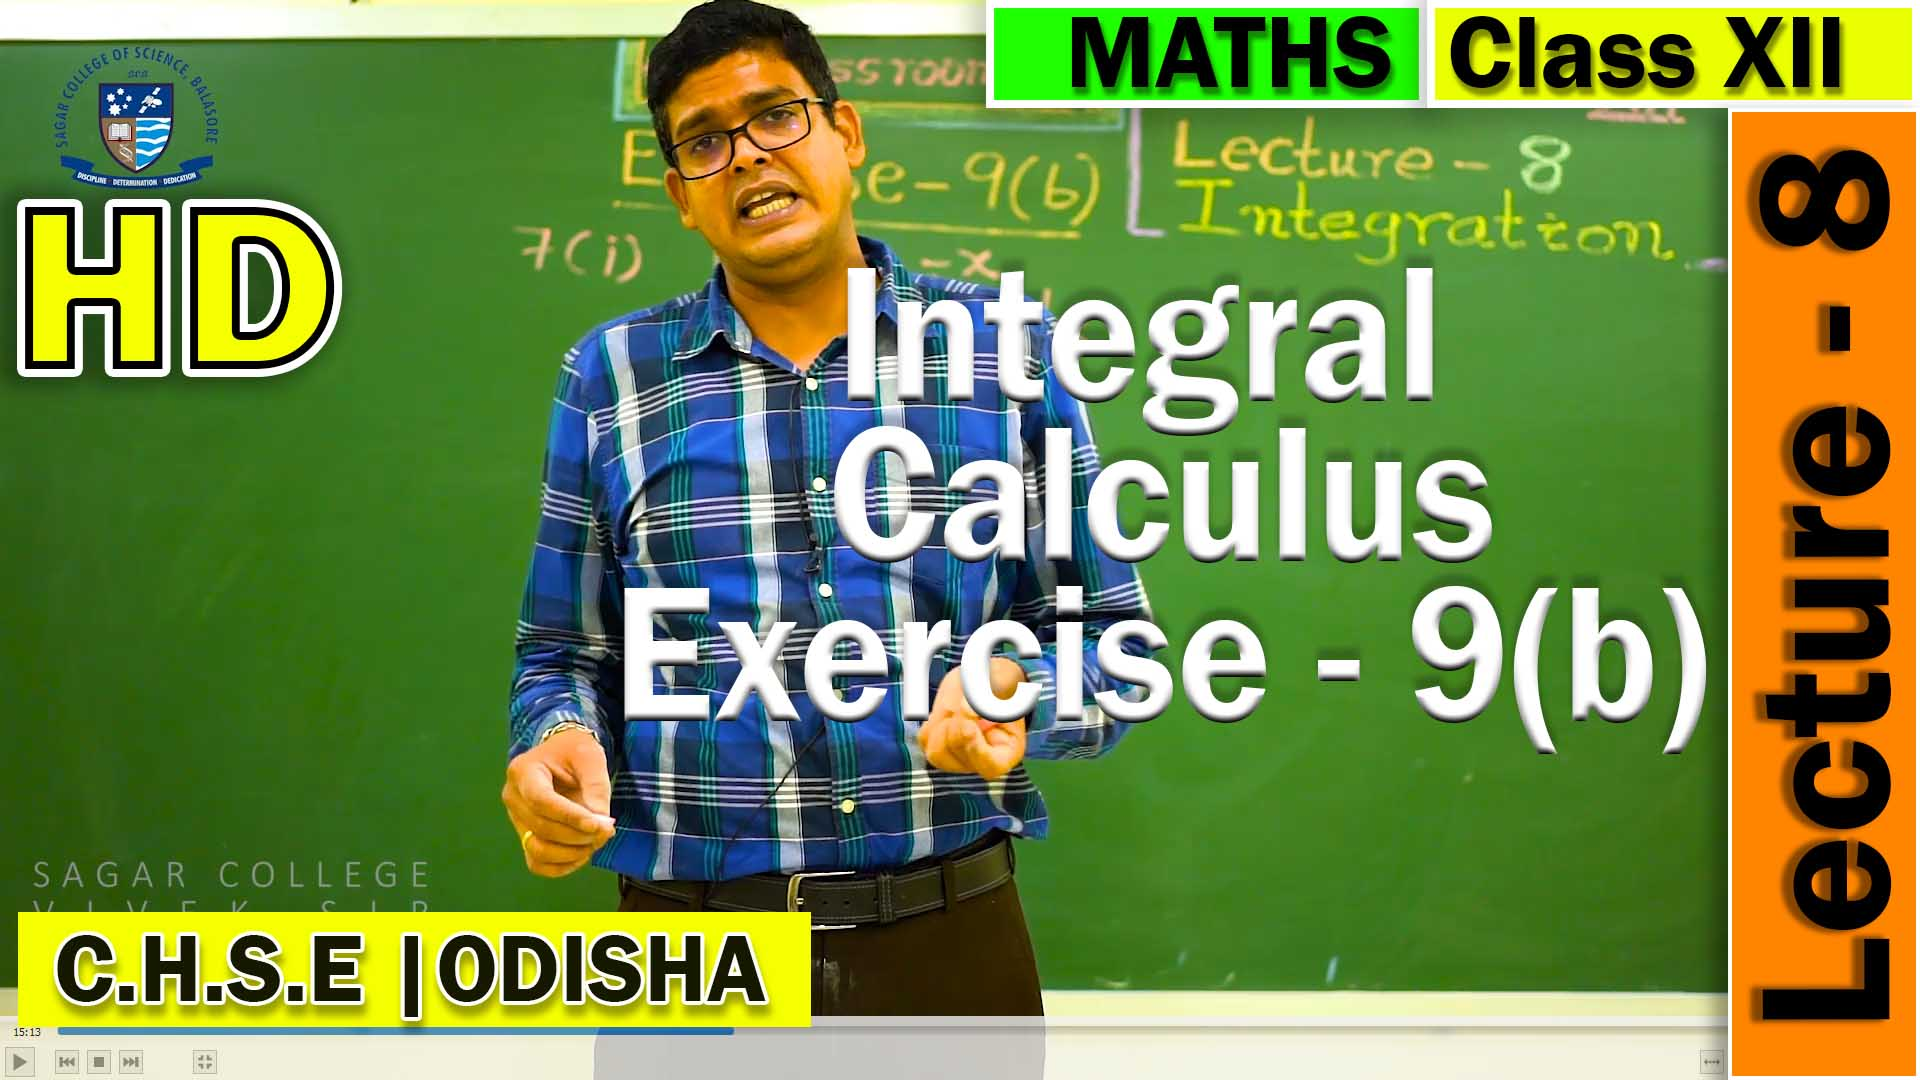 math int L8 - Copy